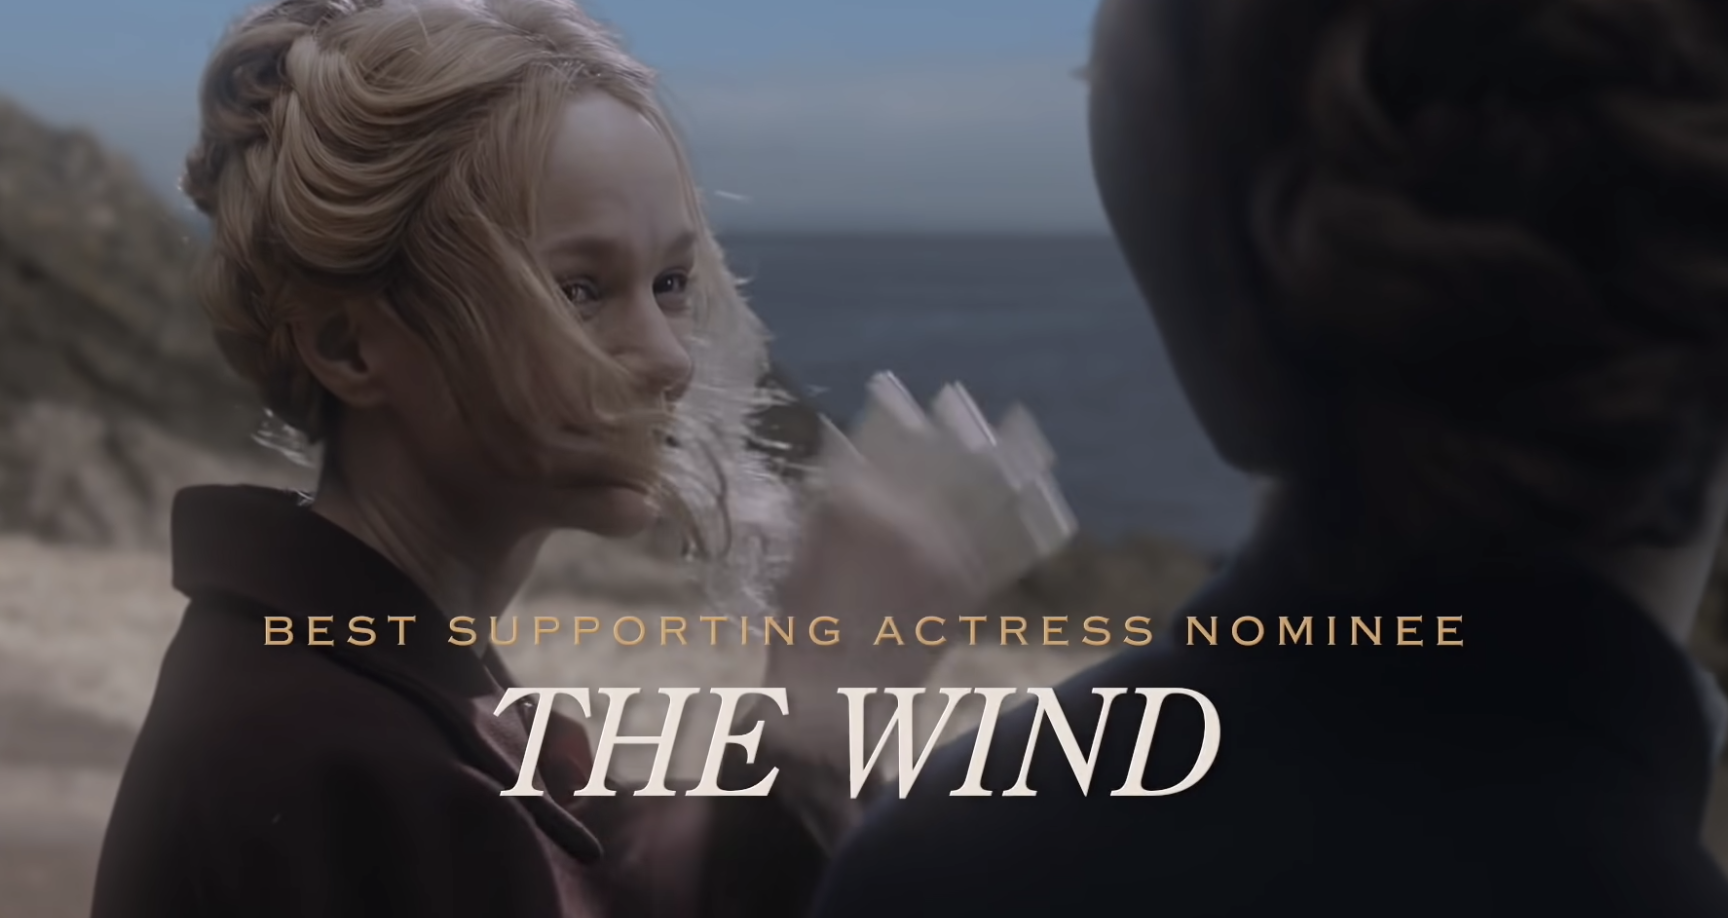 The Best Supporting Actress Nominee is The Wind